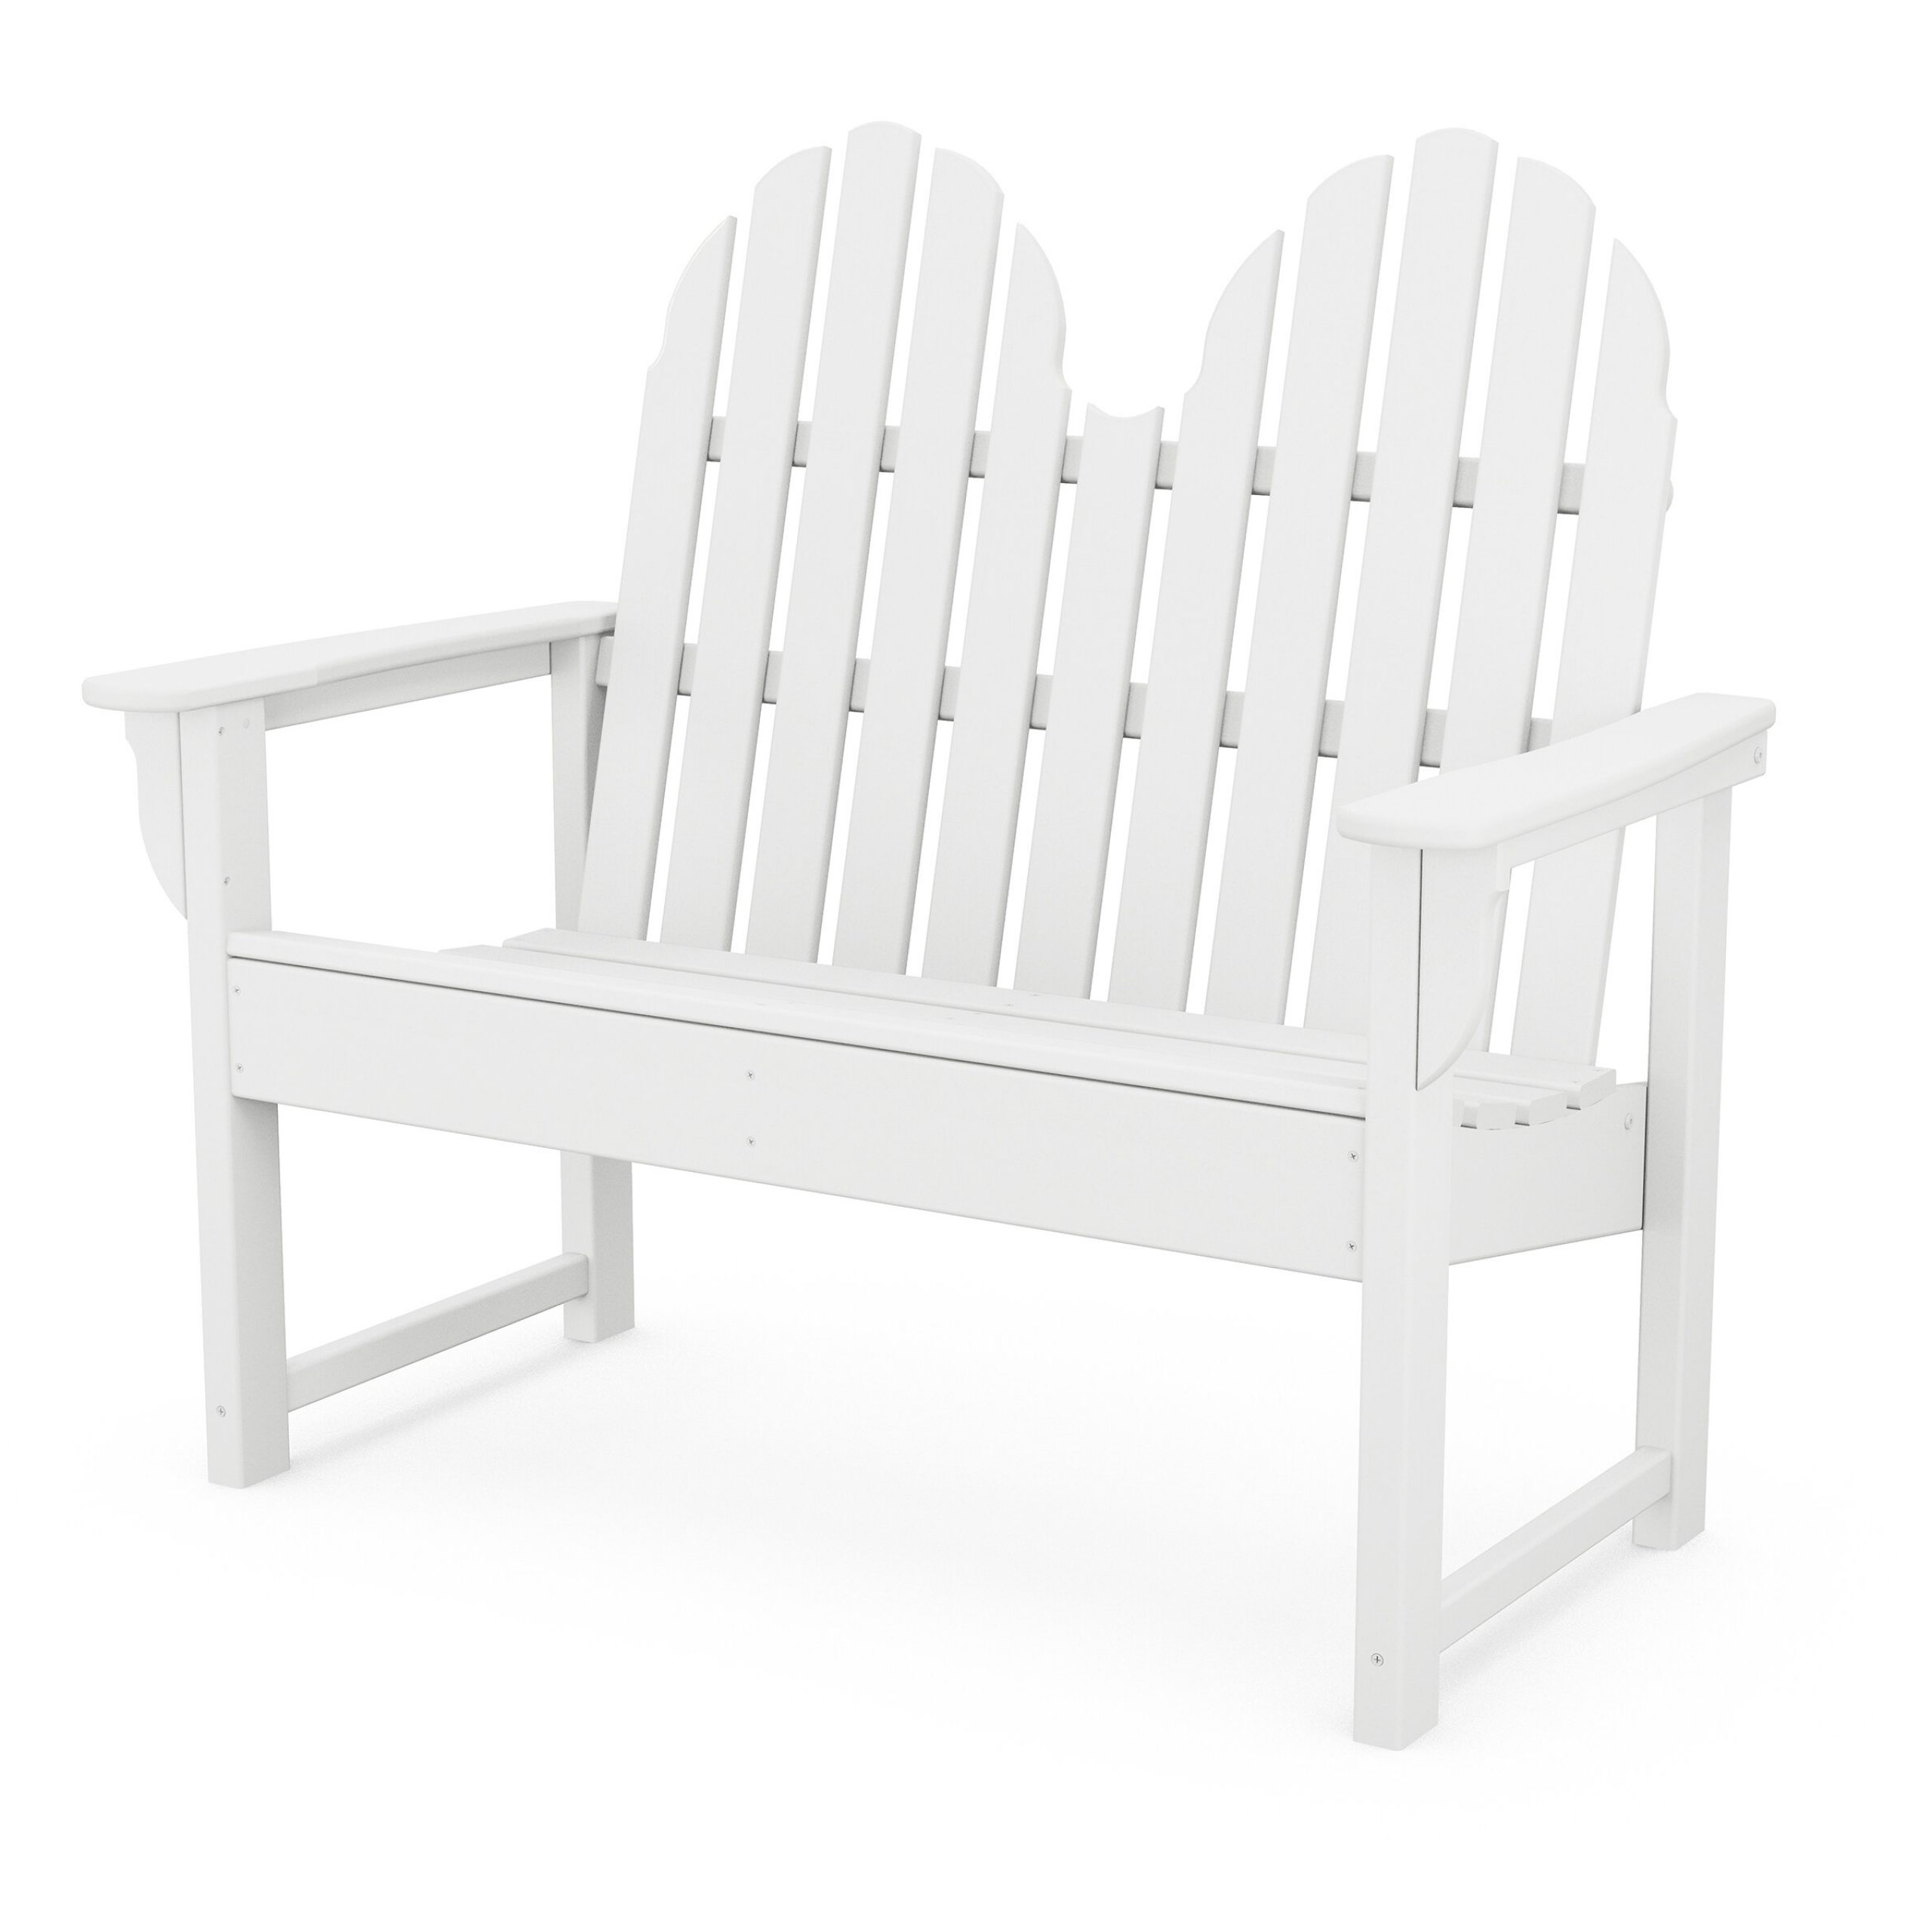 Park White Outdoor Benches You'Ll Love In 2020 | Wayfair With Heslin Steel Park Benches (View 12 of 25)